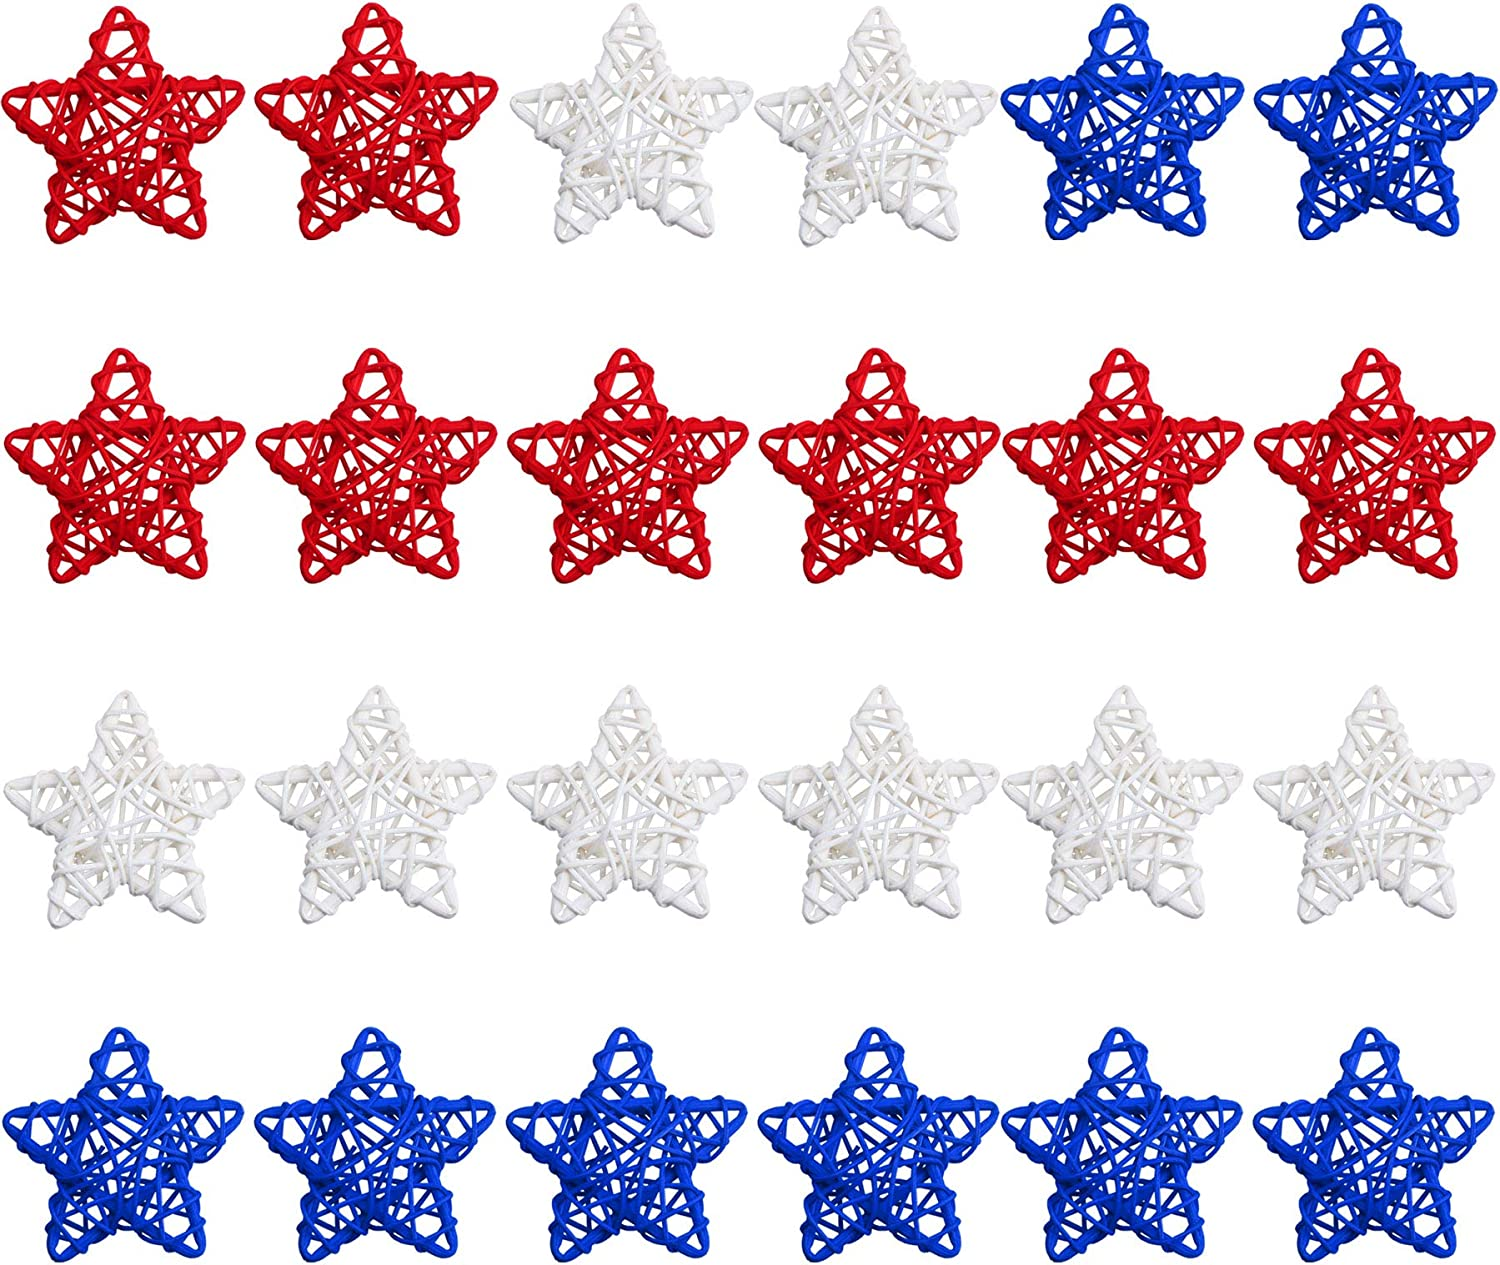 STMK 24 Pcs 4th of July Star Shaped Rattan Balls Decoration, 2.36 Inch Red White and Blue Star Shaped Wicker Balls for 4th of July Home Decor DIY Vase Bowl Filler Ornament Wedding Table Decoration